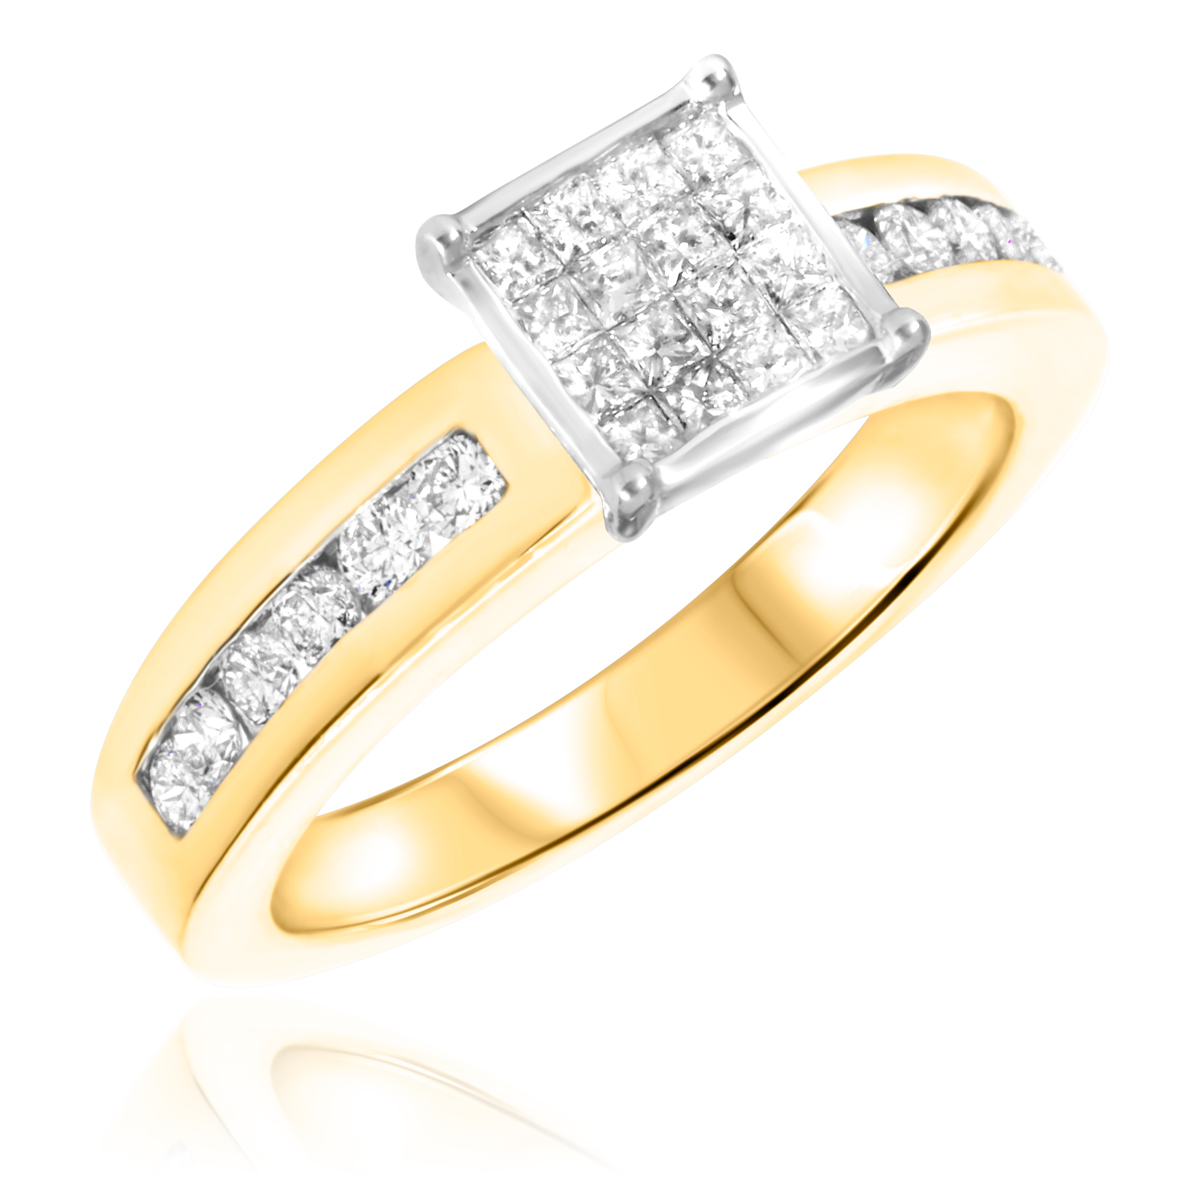 7/8 CT. T.W. Diamond Ladies Engagement Ring 10K Yellow Gold- Size 8